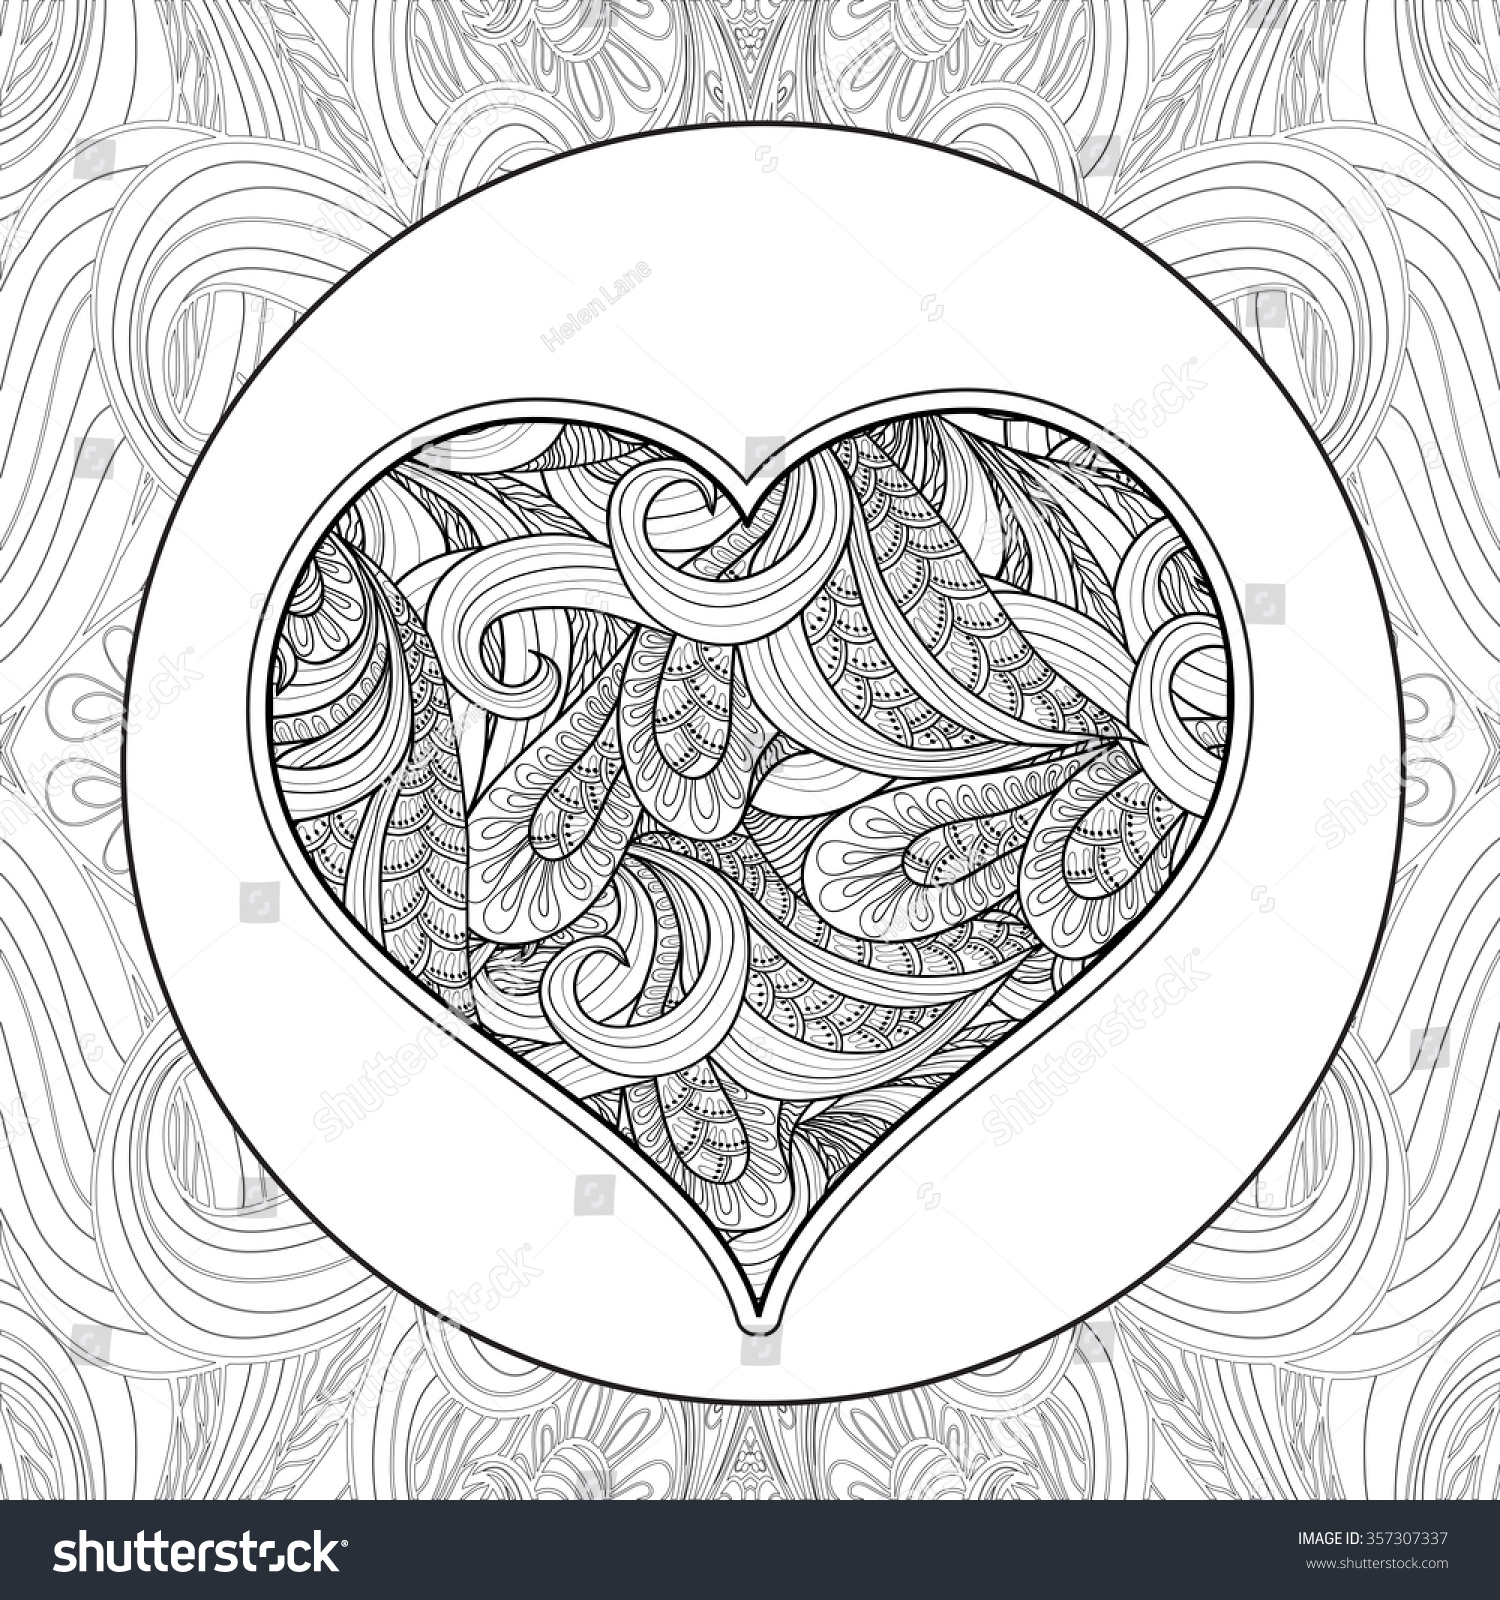 older valentines day coloring pages - photo#12